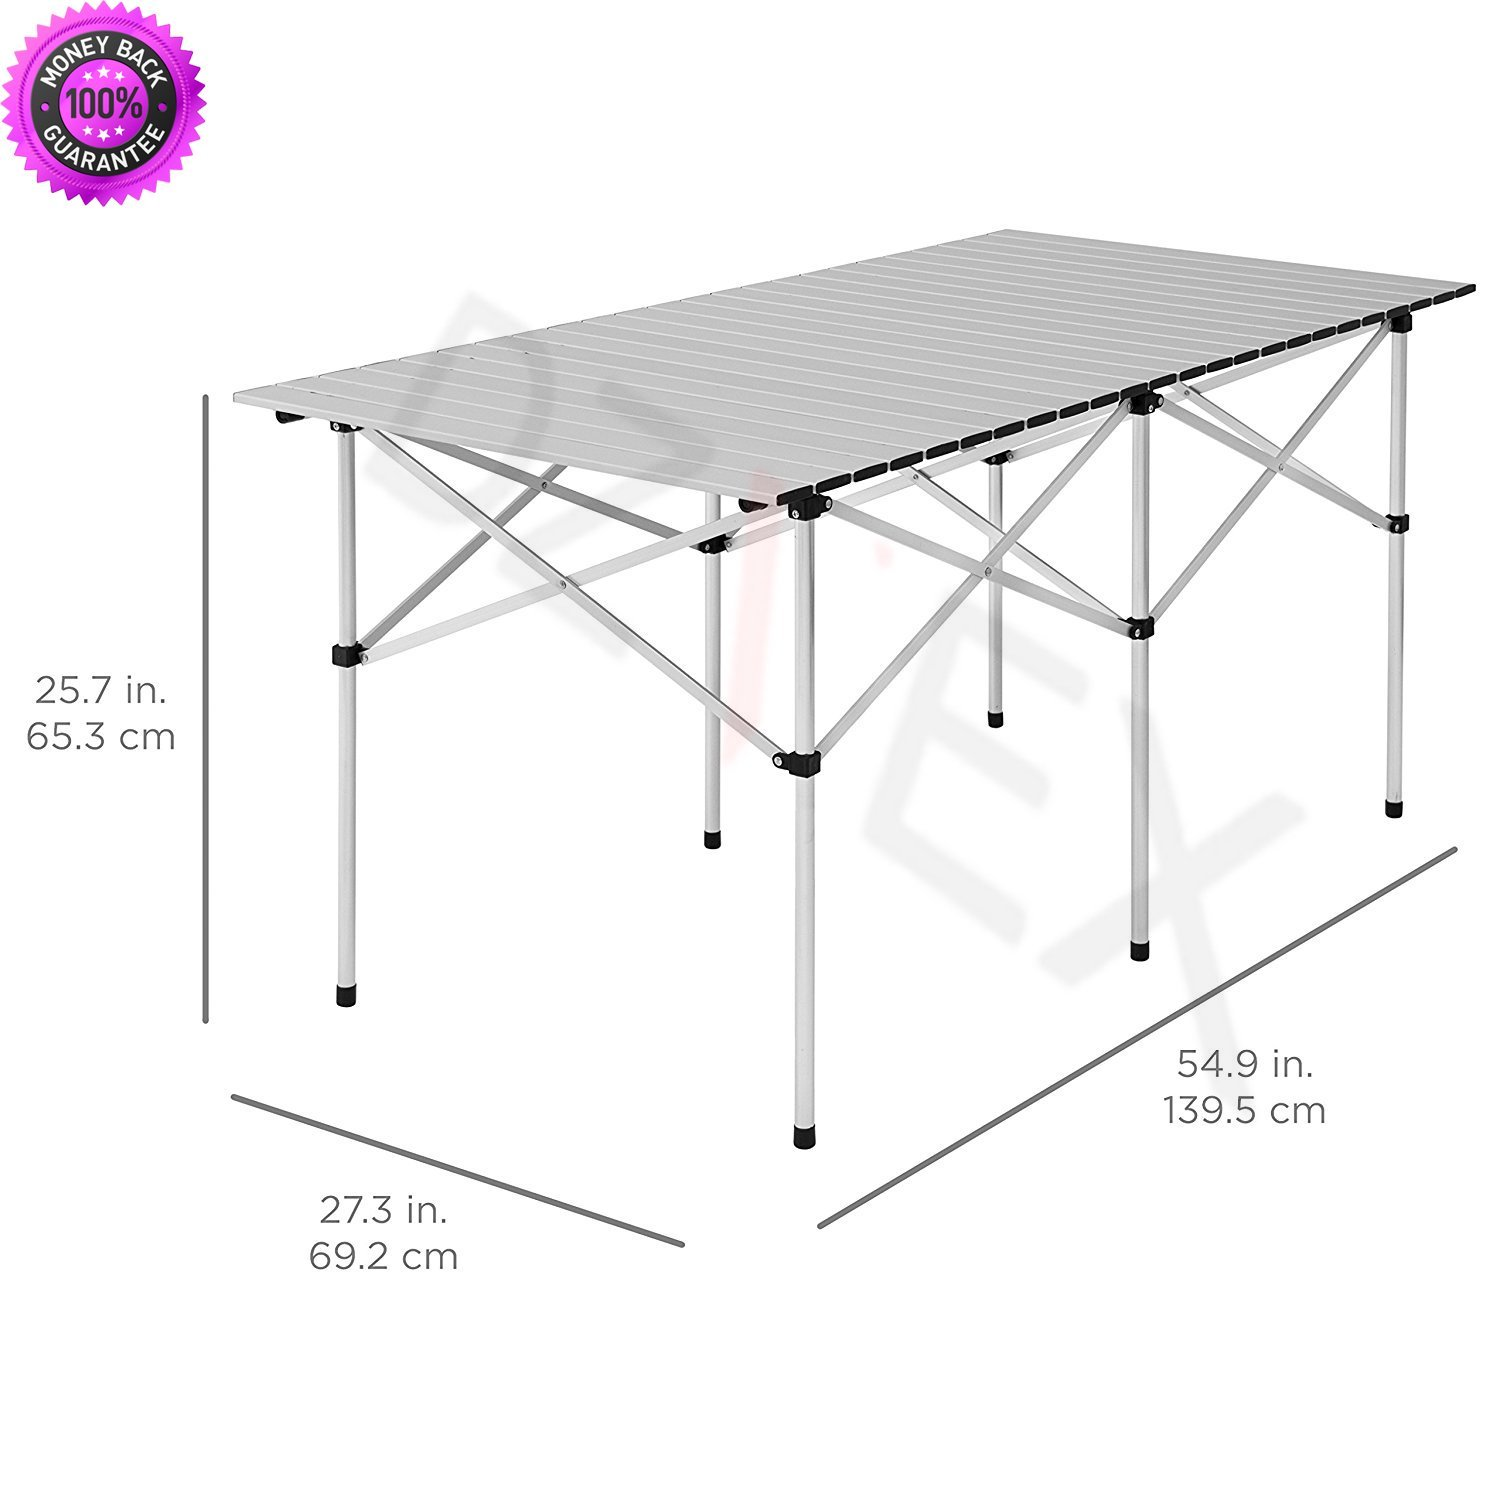 "DzVeX Camping Portable Aluminum 55"" Roll-Up Picnic Table W/Carrying Bag And folding patio chairs folding outdoor chairs camping furniture clearance backpack chairs lawn chairs on sale camp chairs"